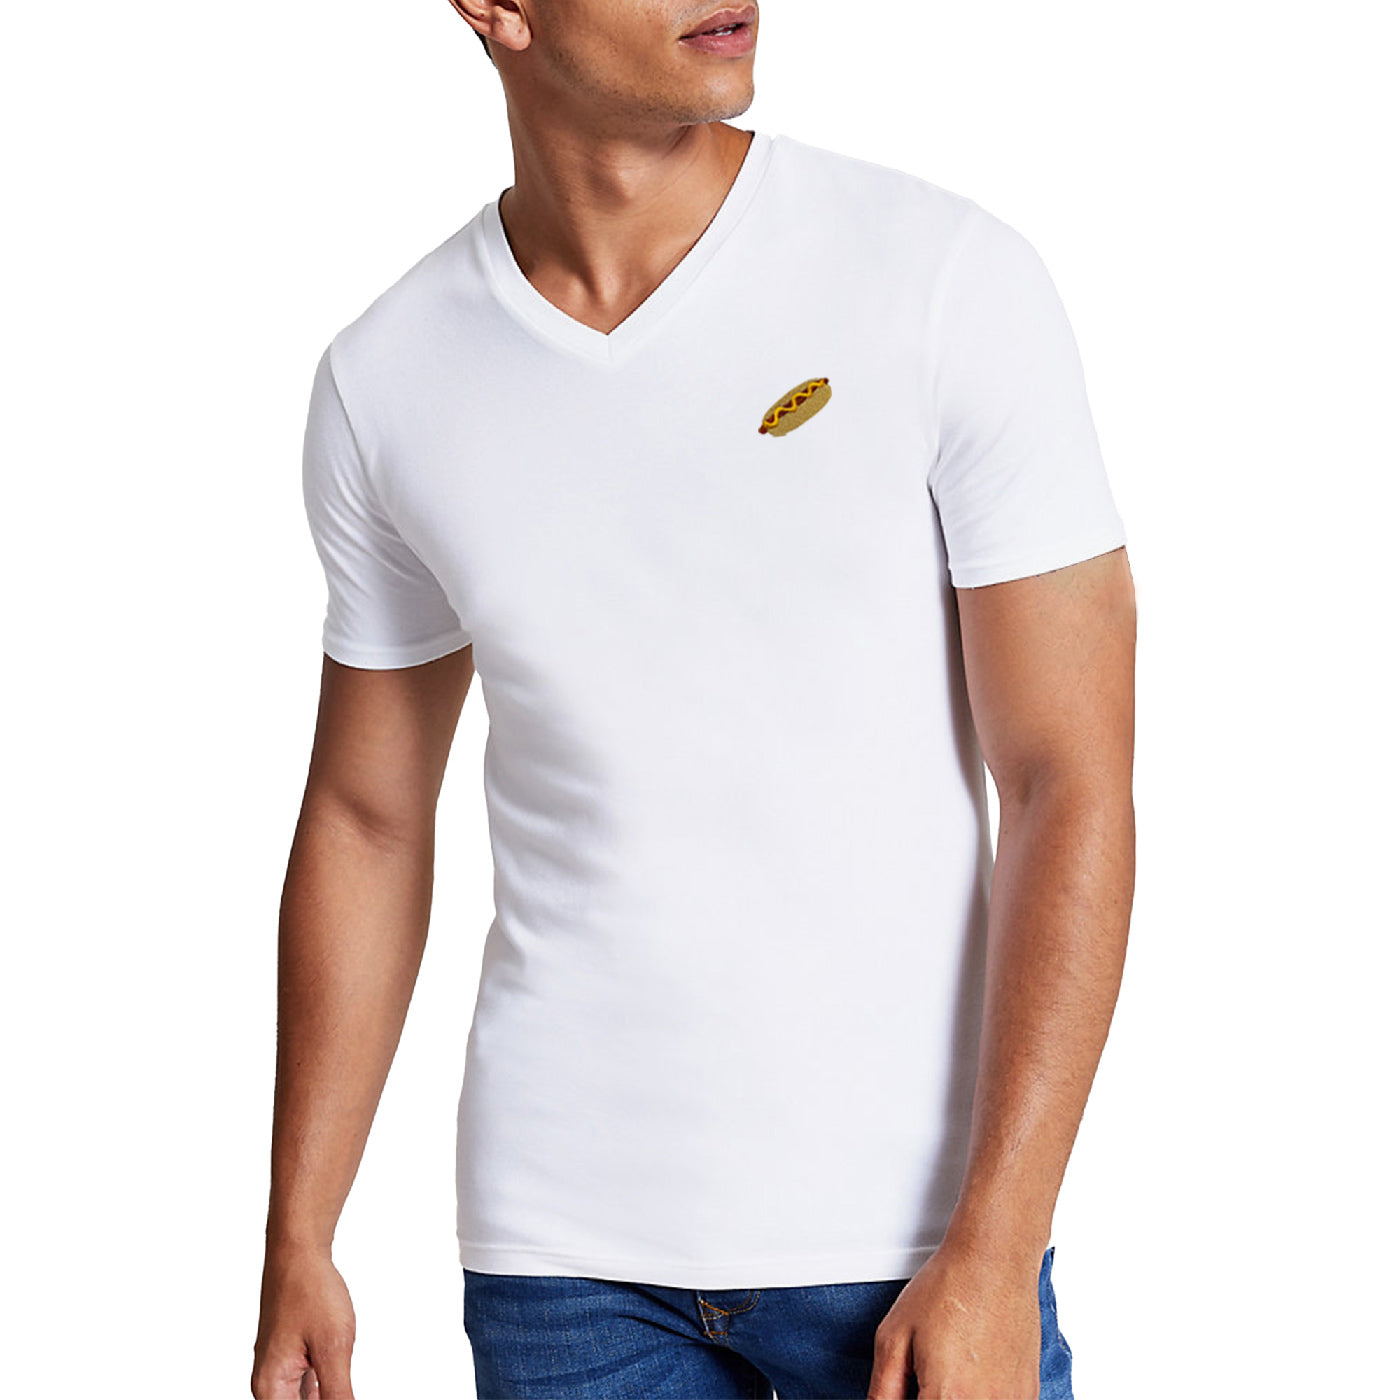 Pologize™ Hot Dog Embroidered V-Neck T-Shirt